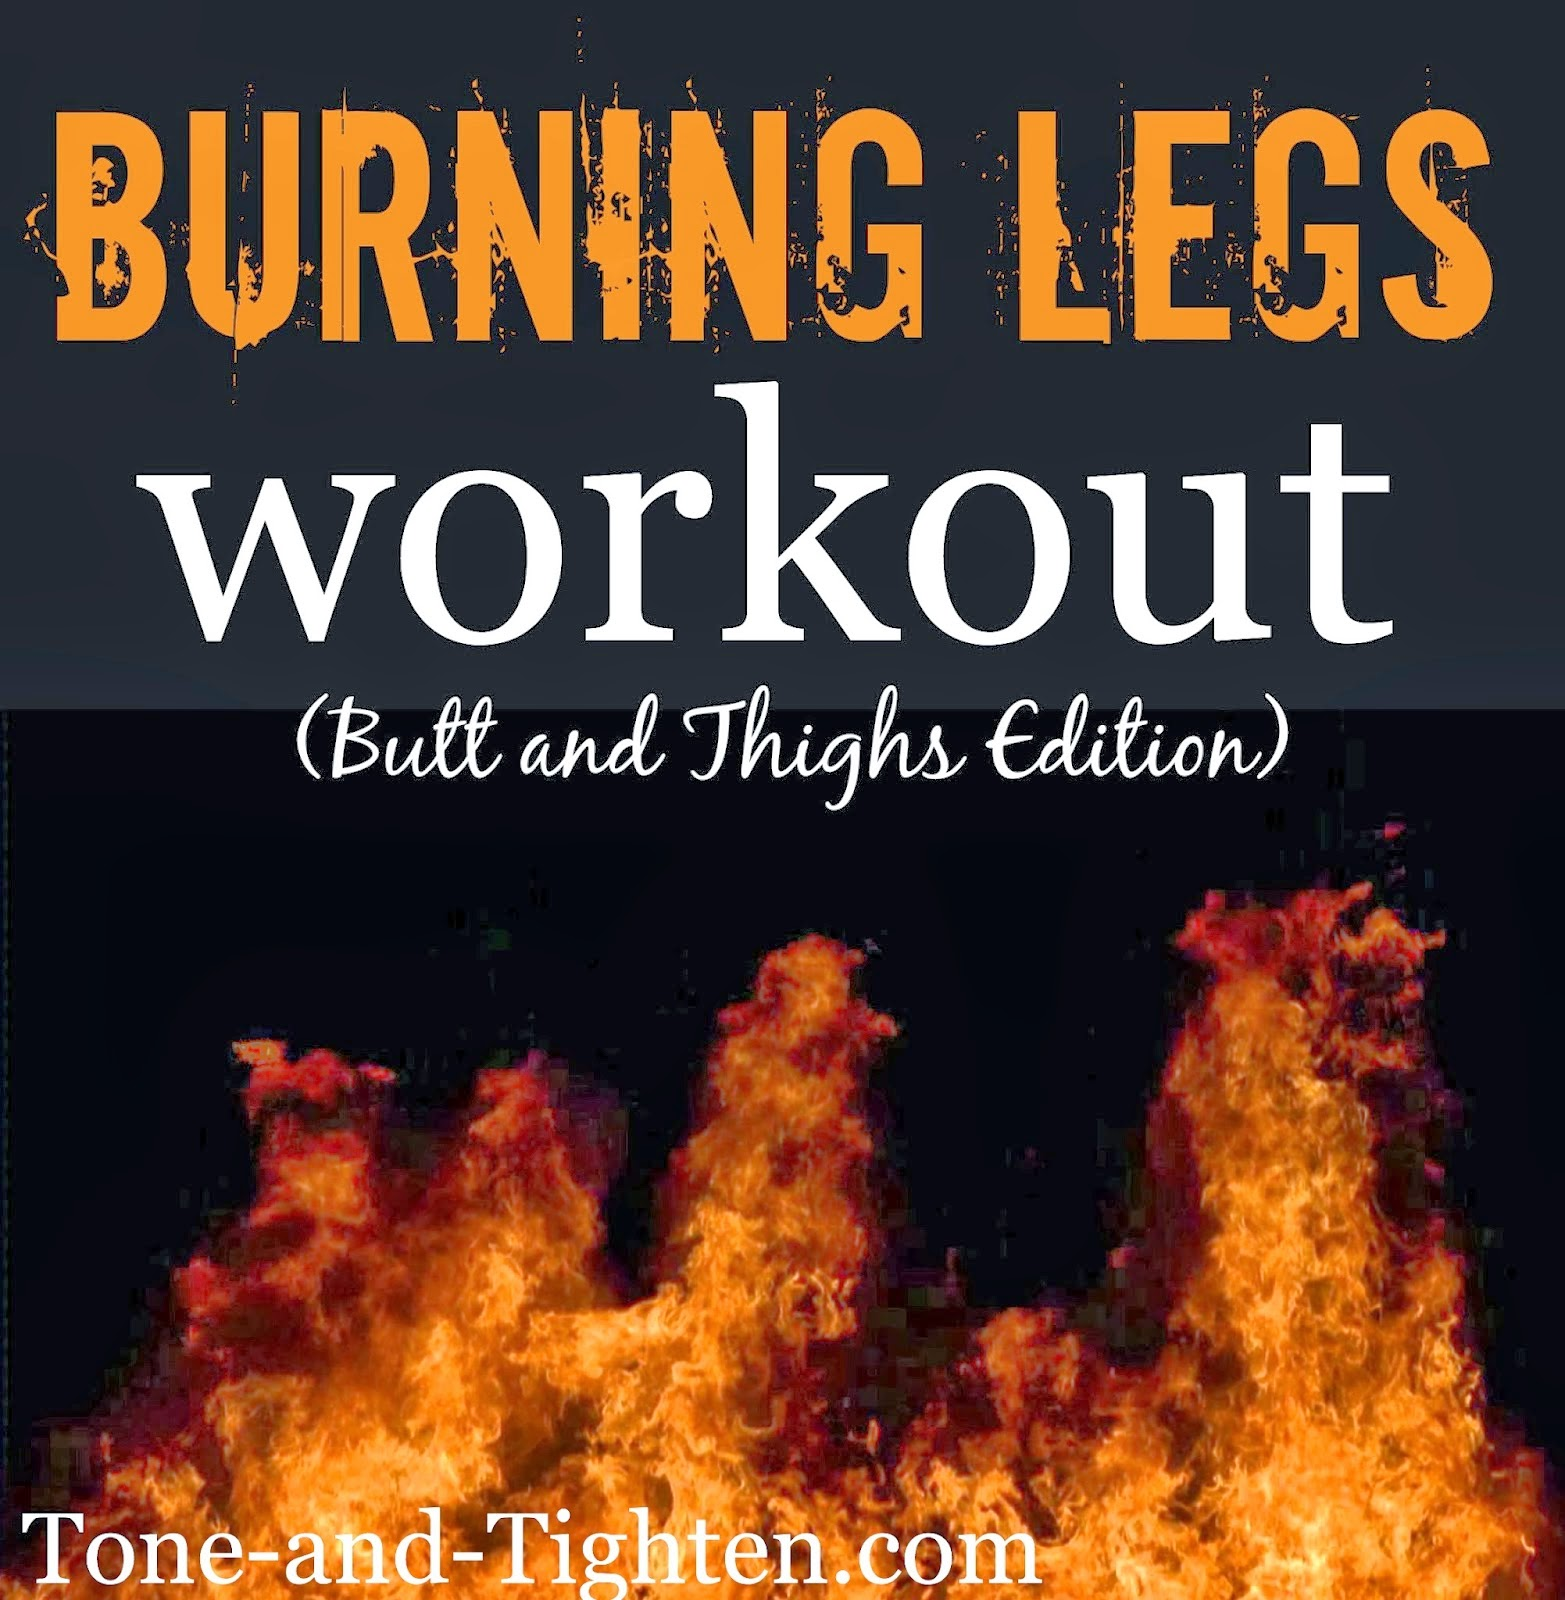 http://tone-and-tighten.com/2014/01/video-workout-burning-legs-workout-butt-and-thighs-edition.html